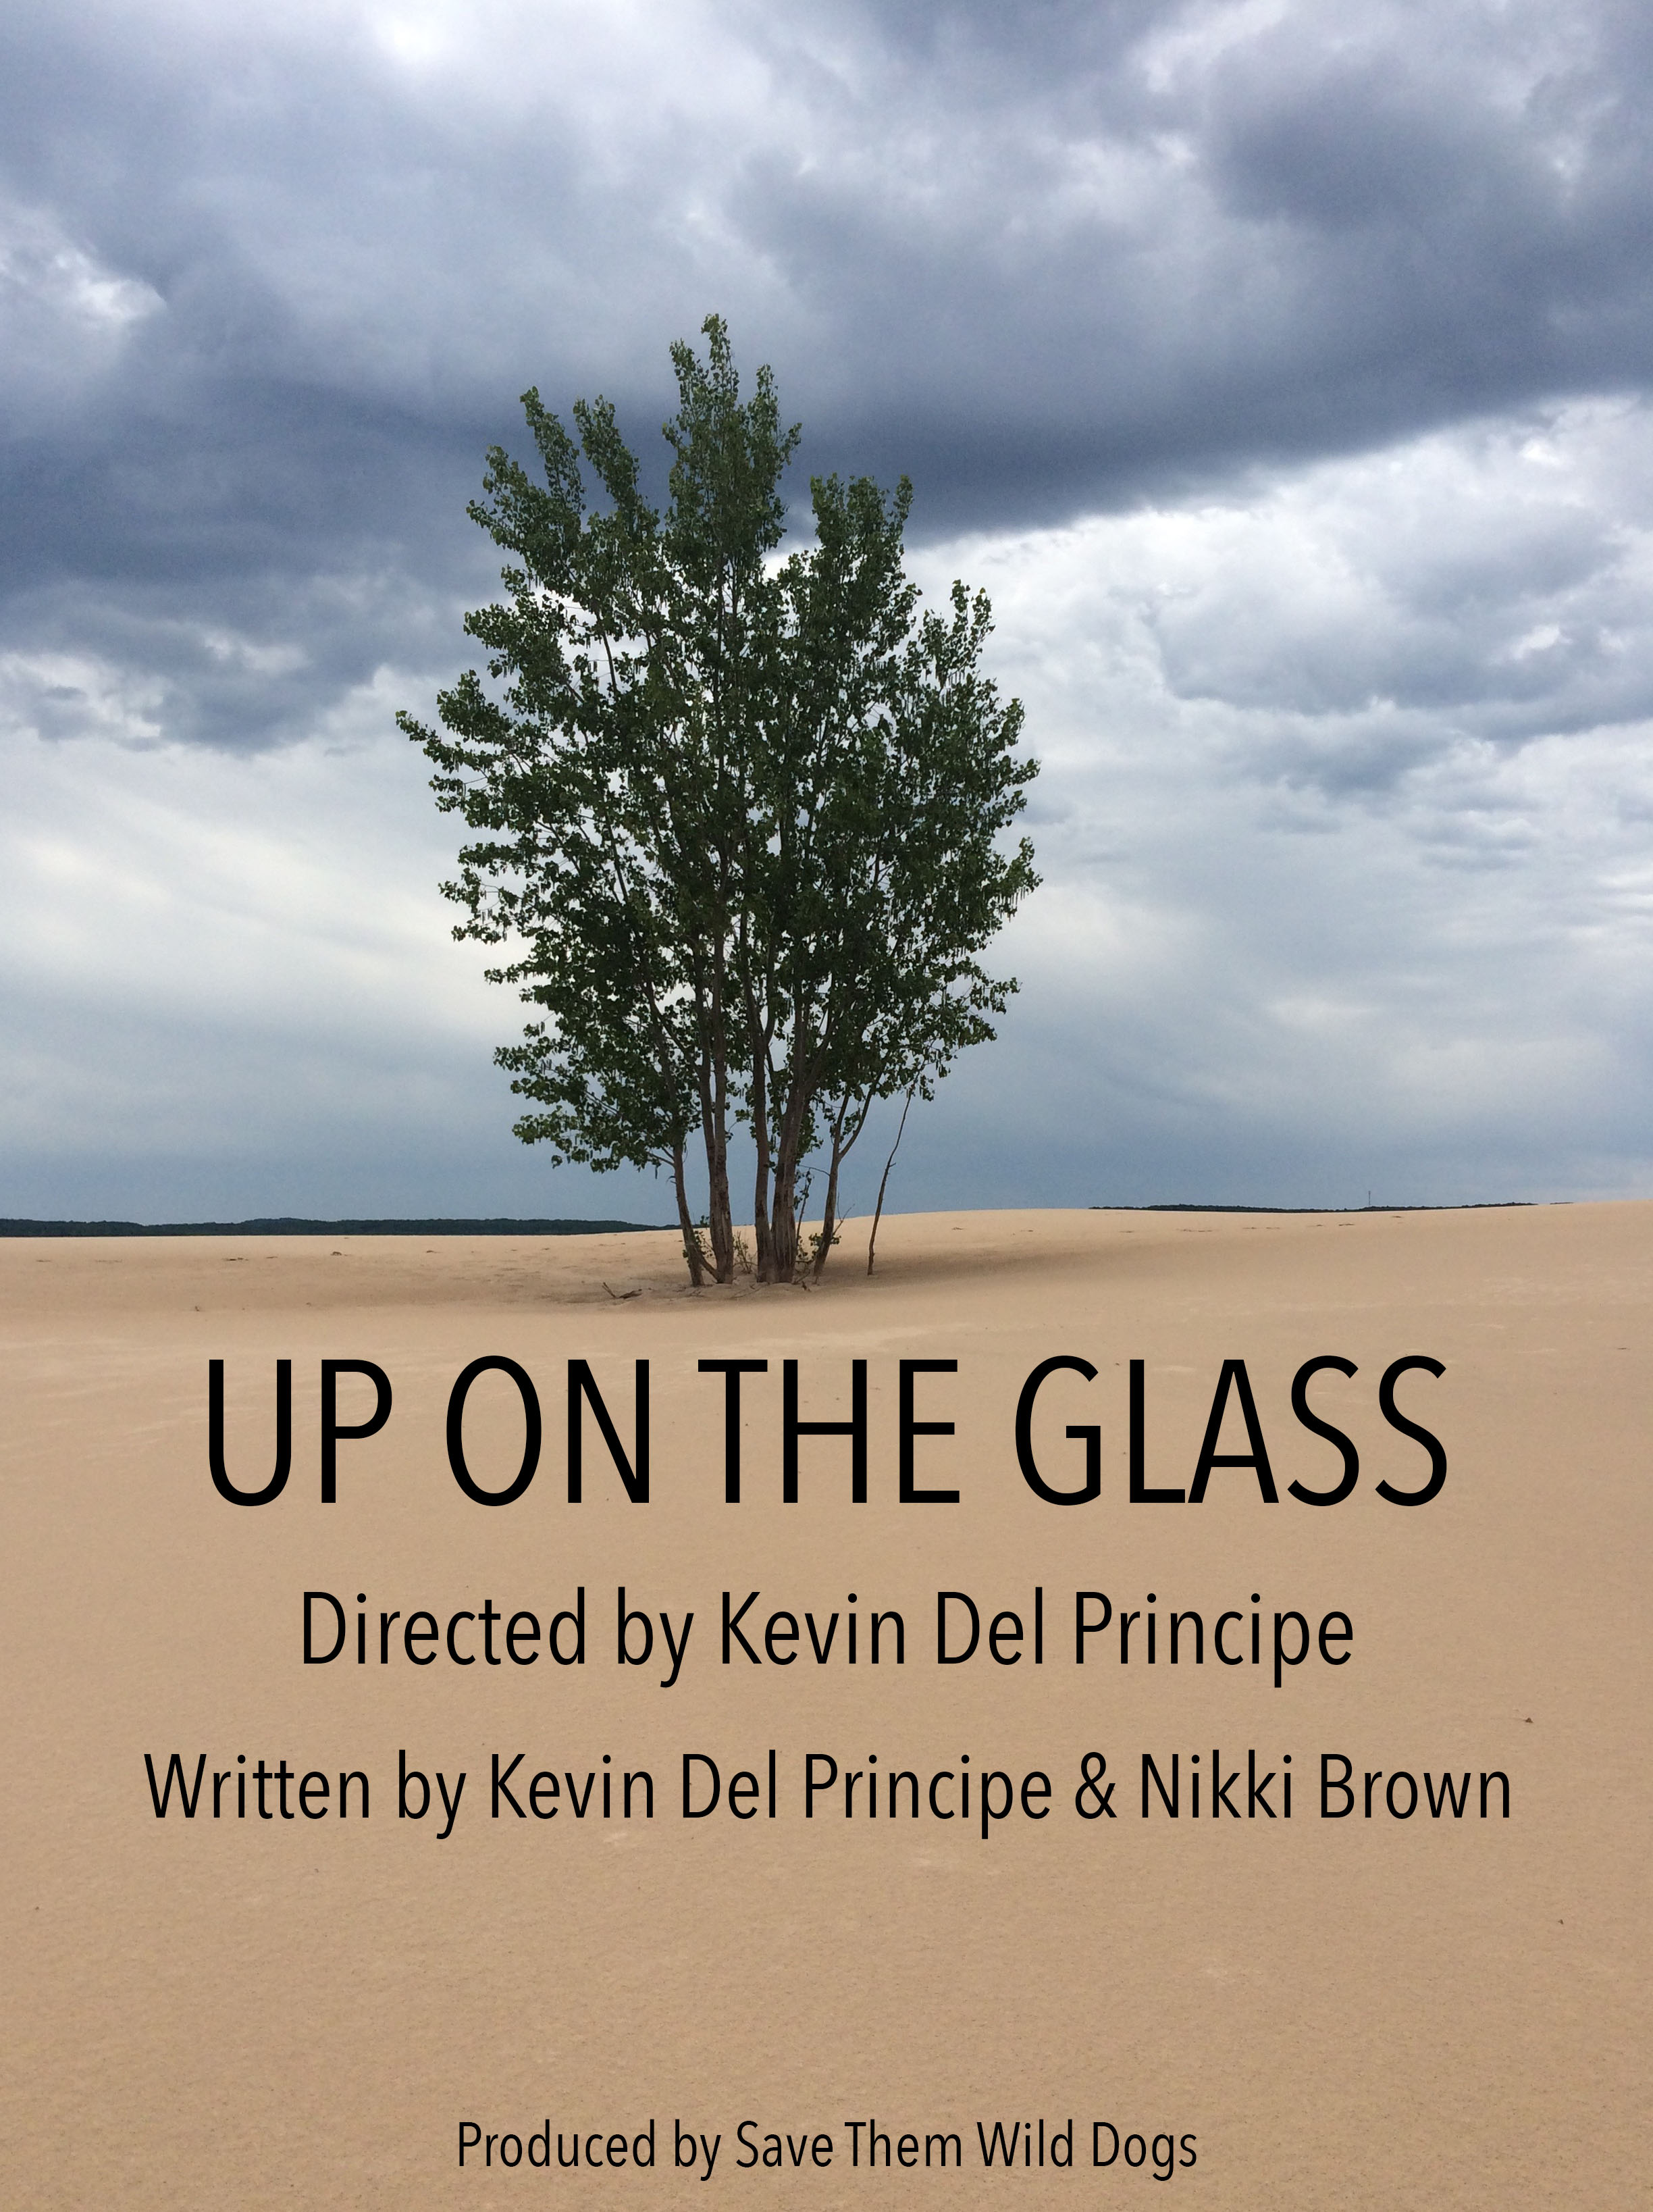 Up on the Glass Poster copy